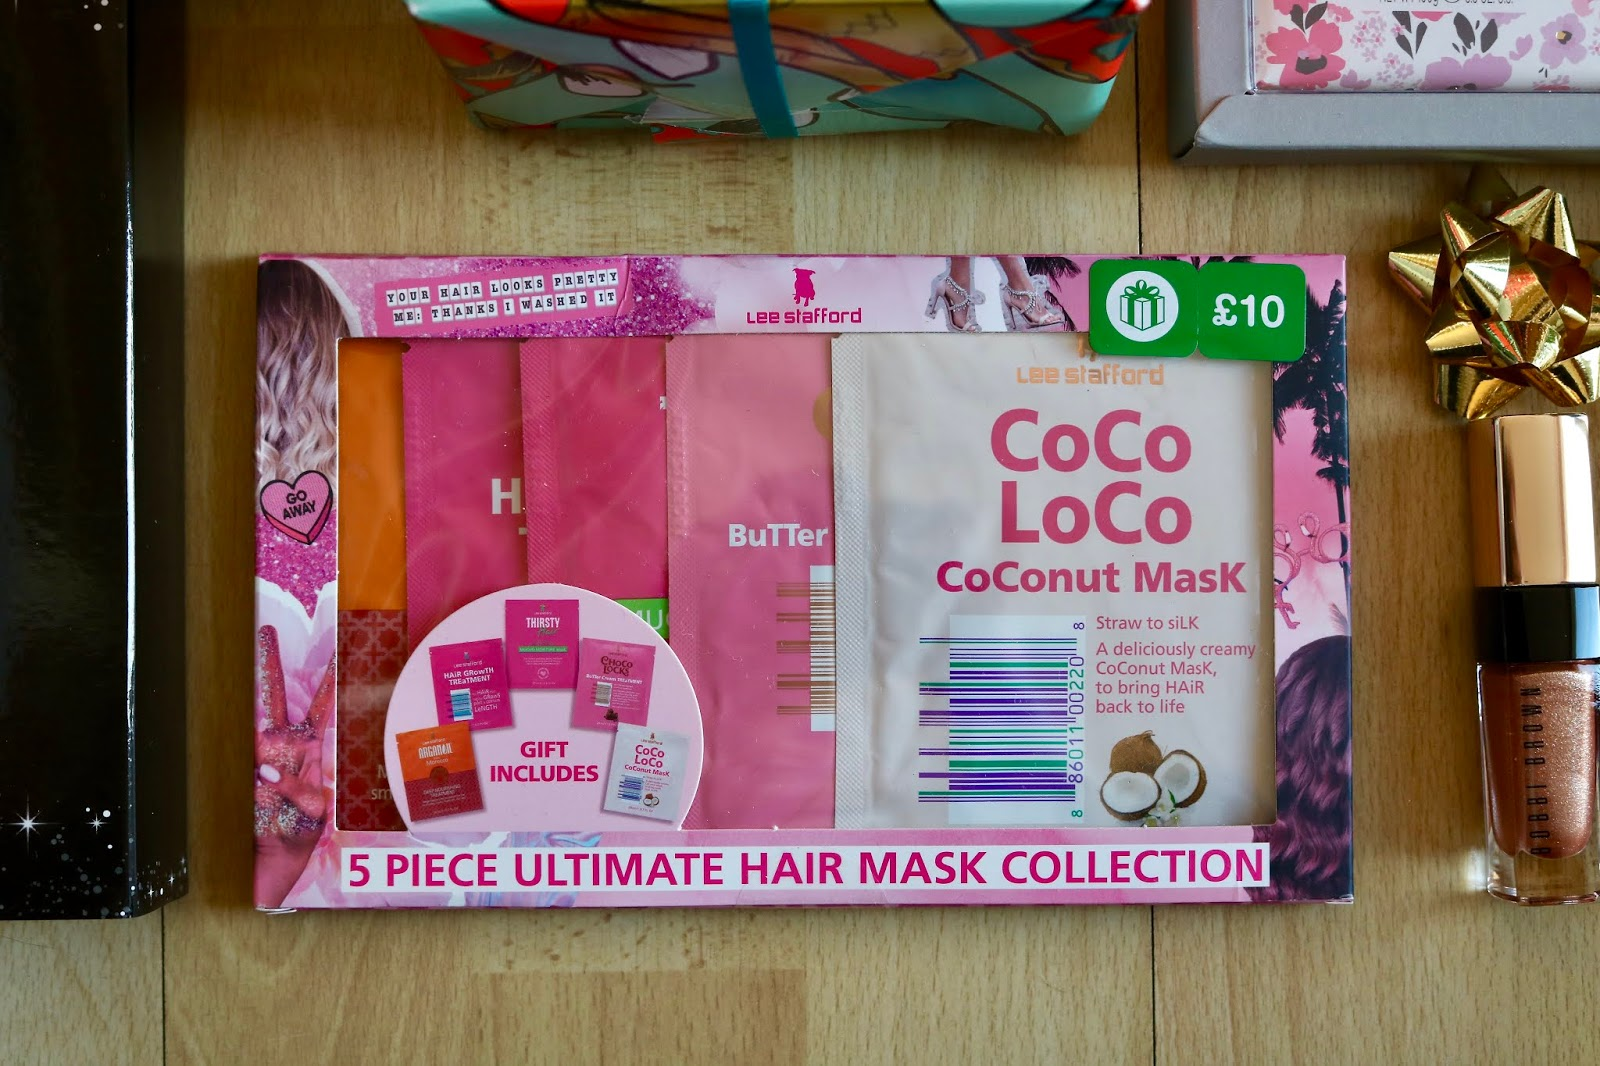 LEE STAFFORD ULTIMATE HAIR MASK COLLECTION £10